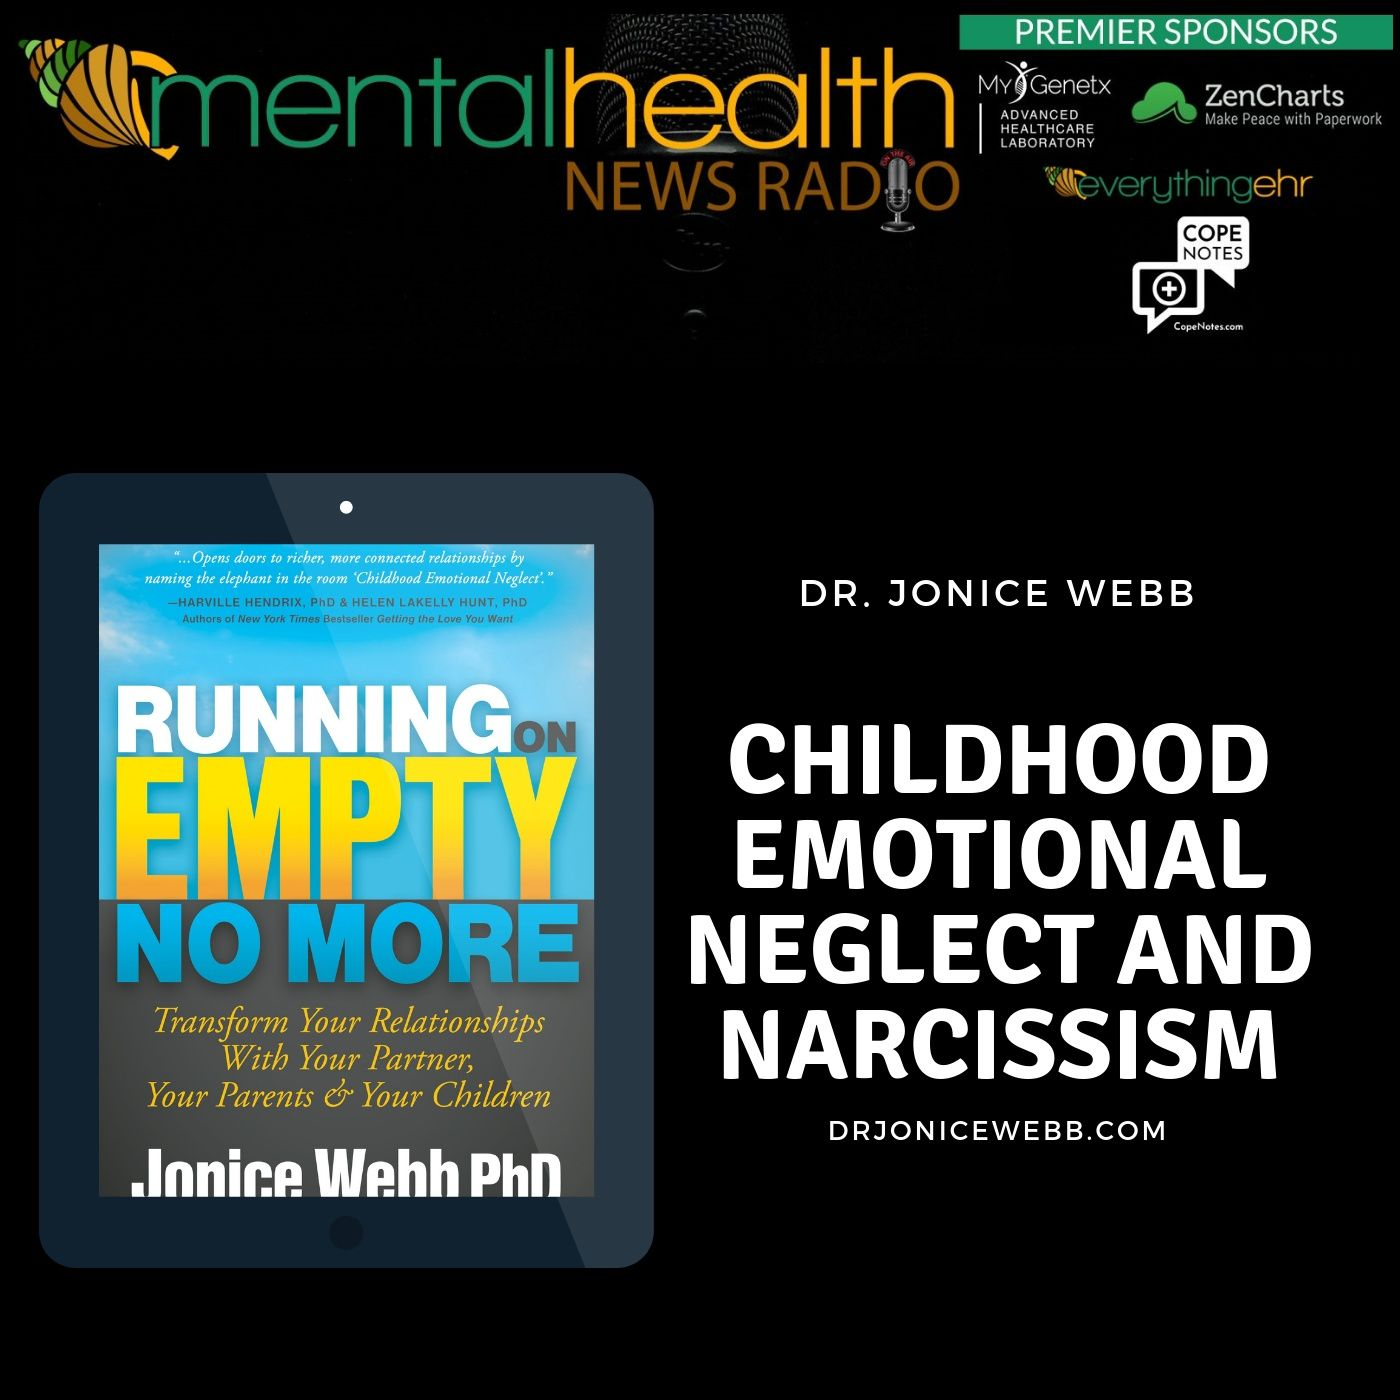 Mental Health News Radio - Childhood Emotional Neglect and Narcissism with Dr. Jonice Webb